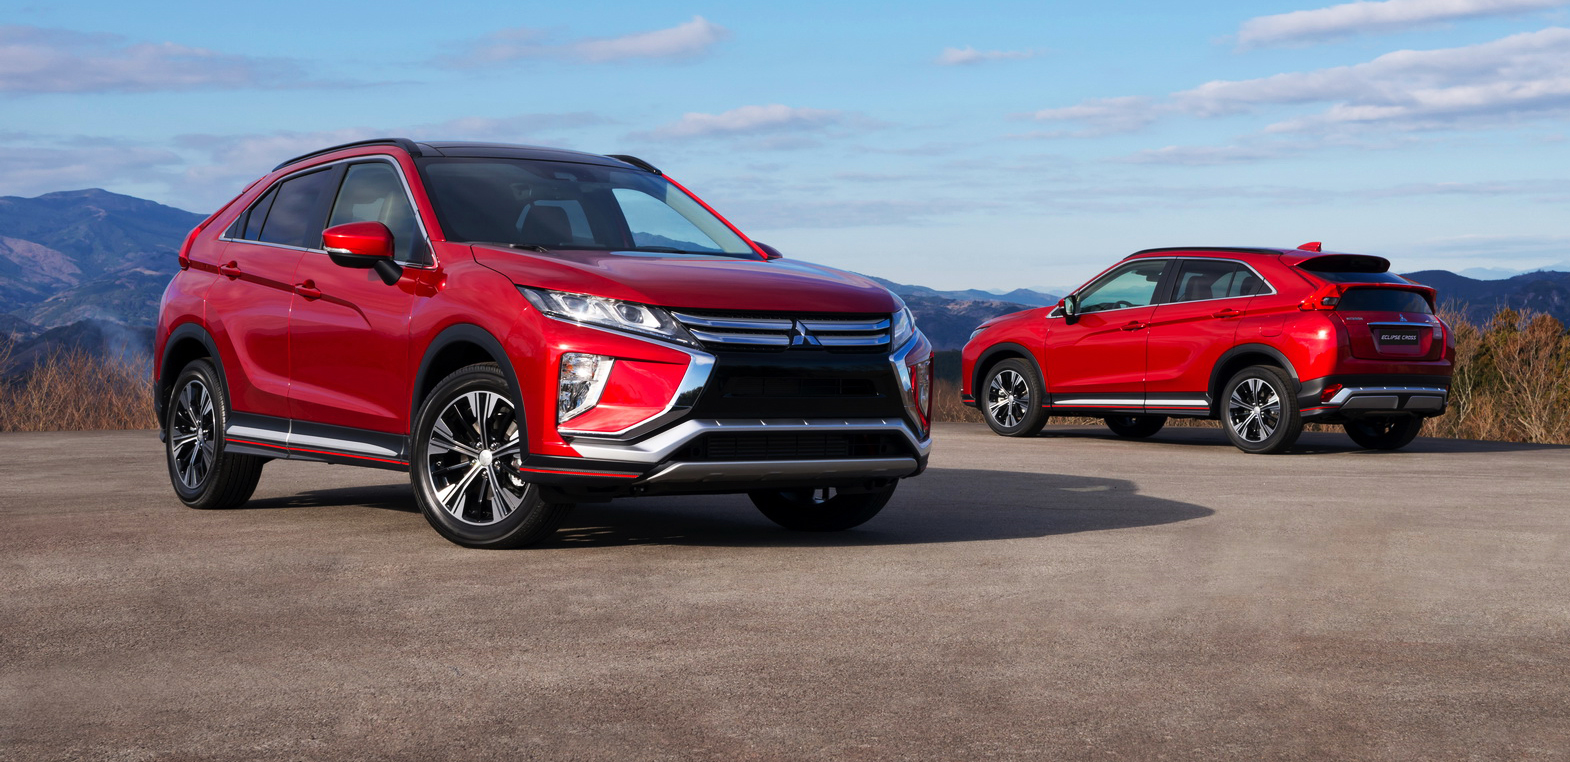 2018 Mitsubishi Eclipse Cross Revealed For Geneva Show